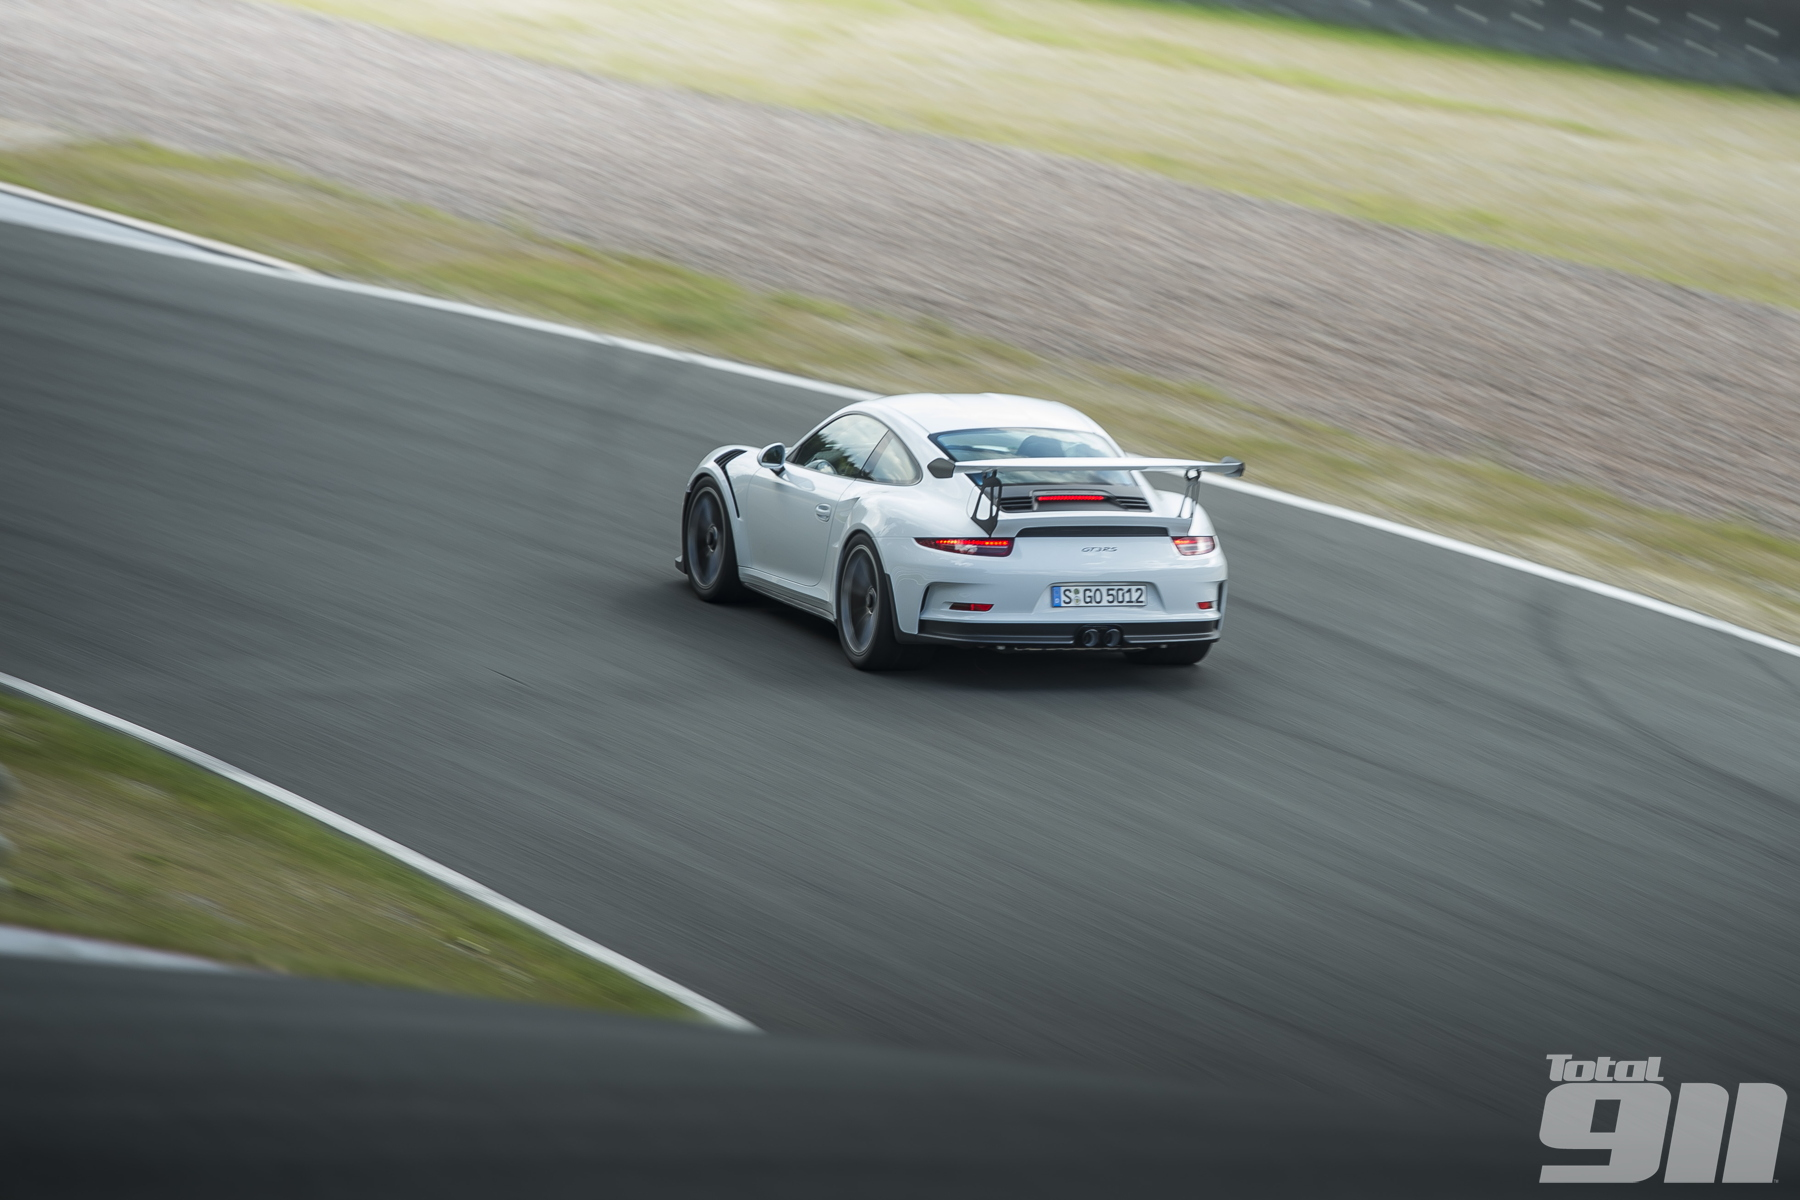 It's a technological marvel, but can the new Porsche 911 GT3 RS thrill us on track? We find out in issue 128.